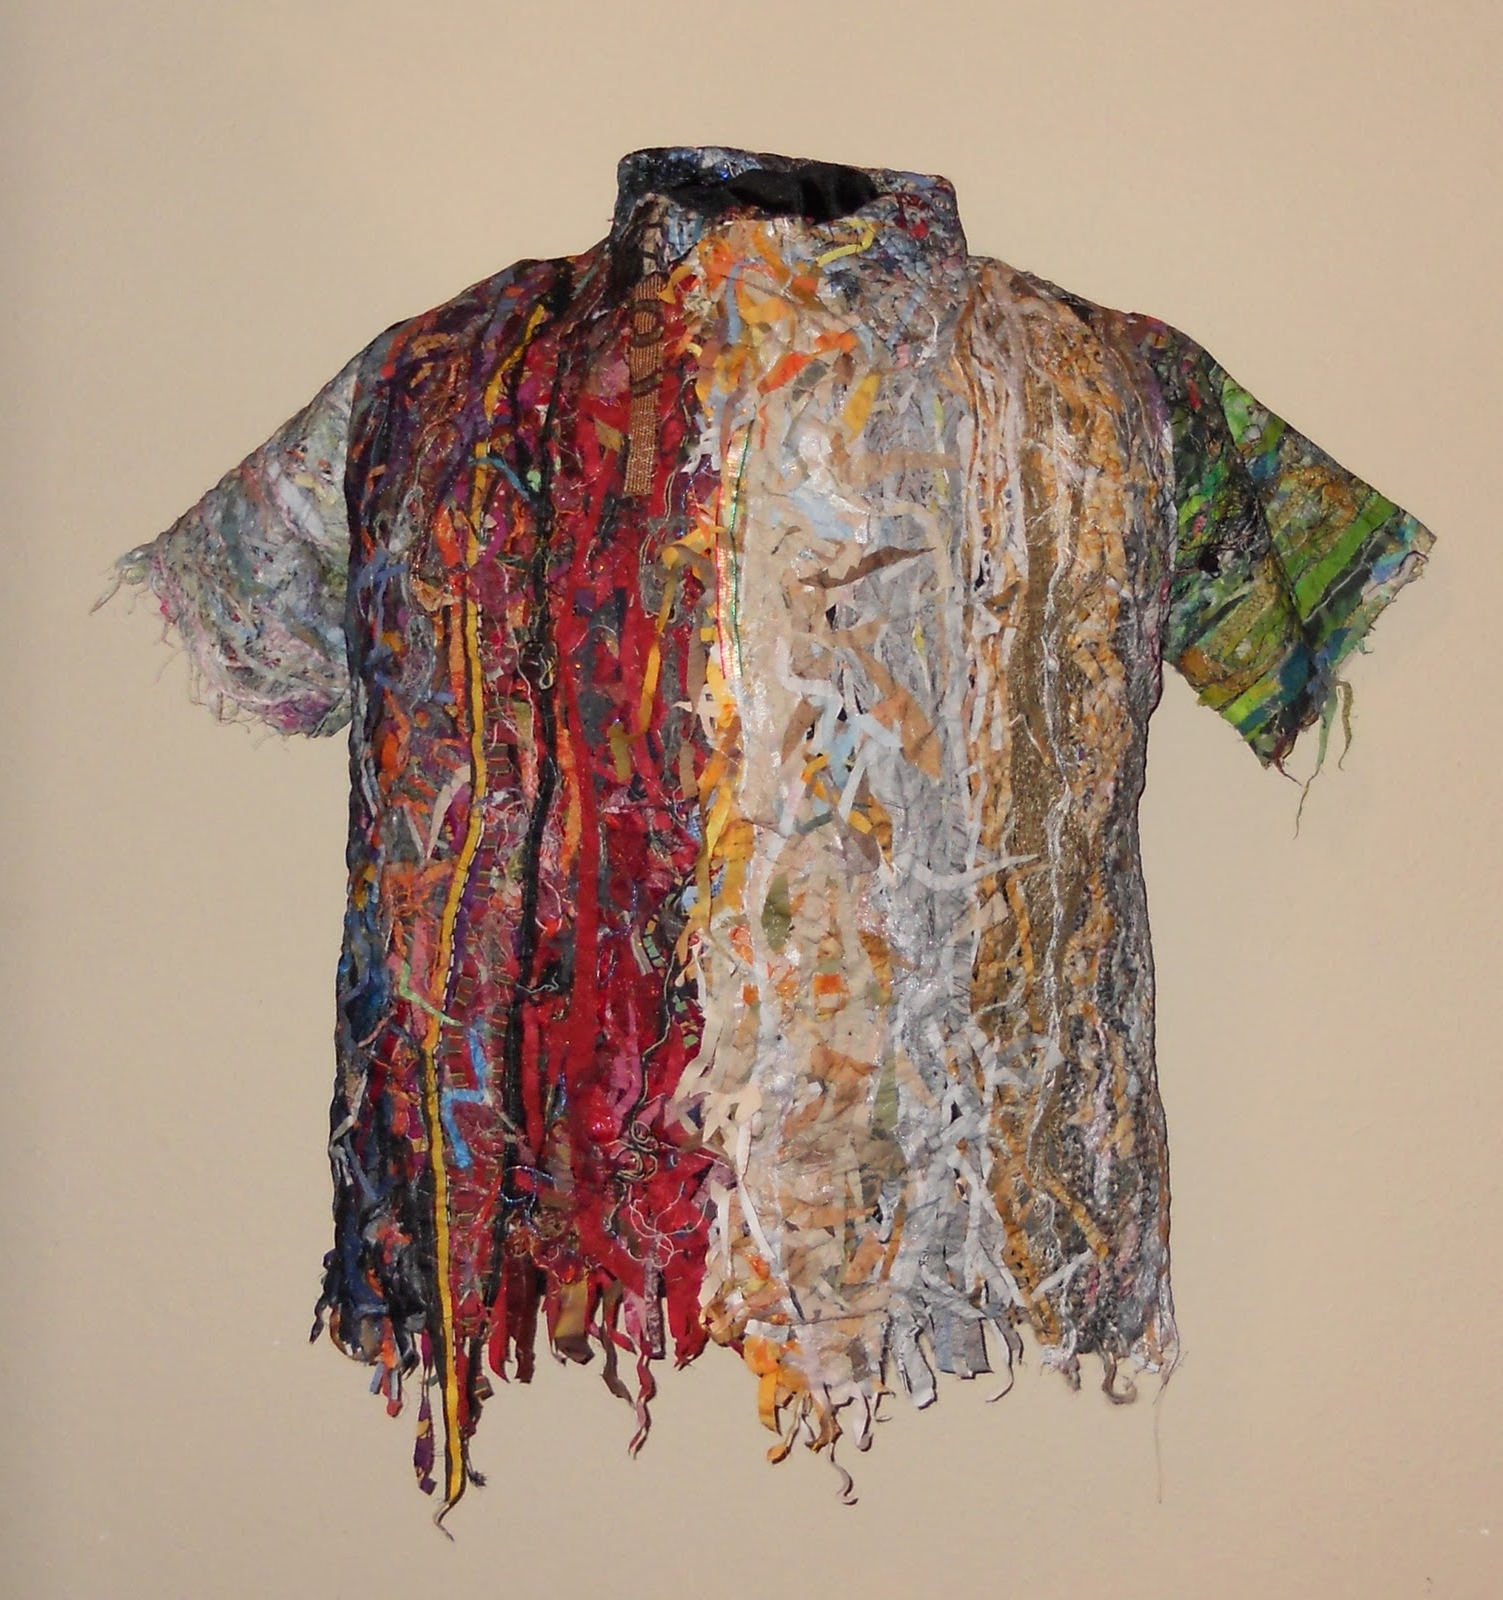 Judys Fiber Art: Shirtwaste: Fabric Sculpture With Best And Newest Fabric Collage Wall Art (View 11 of 15)